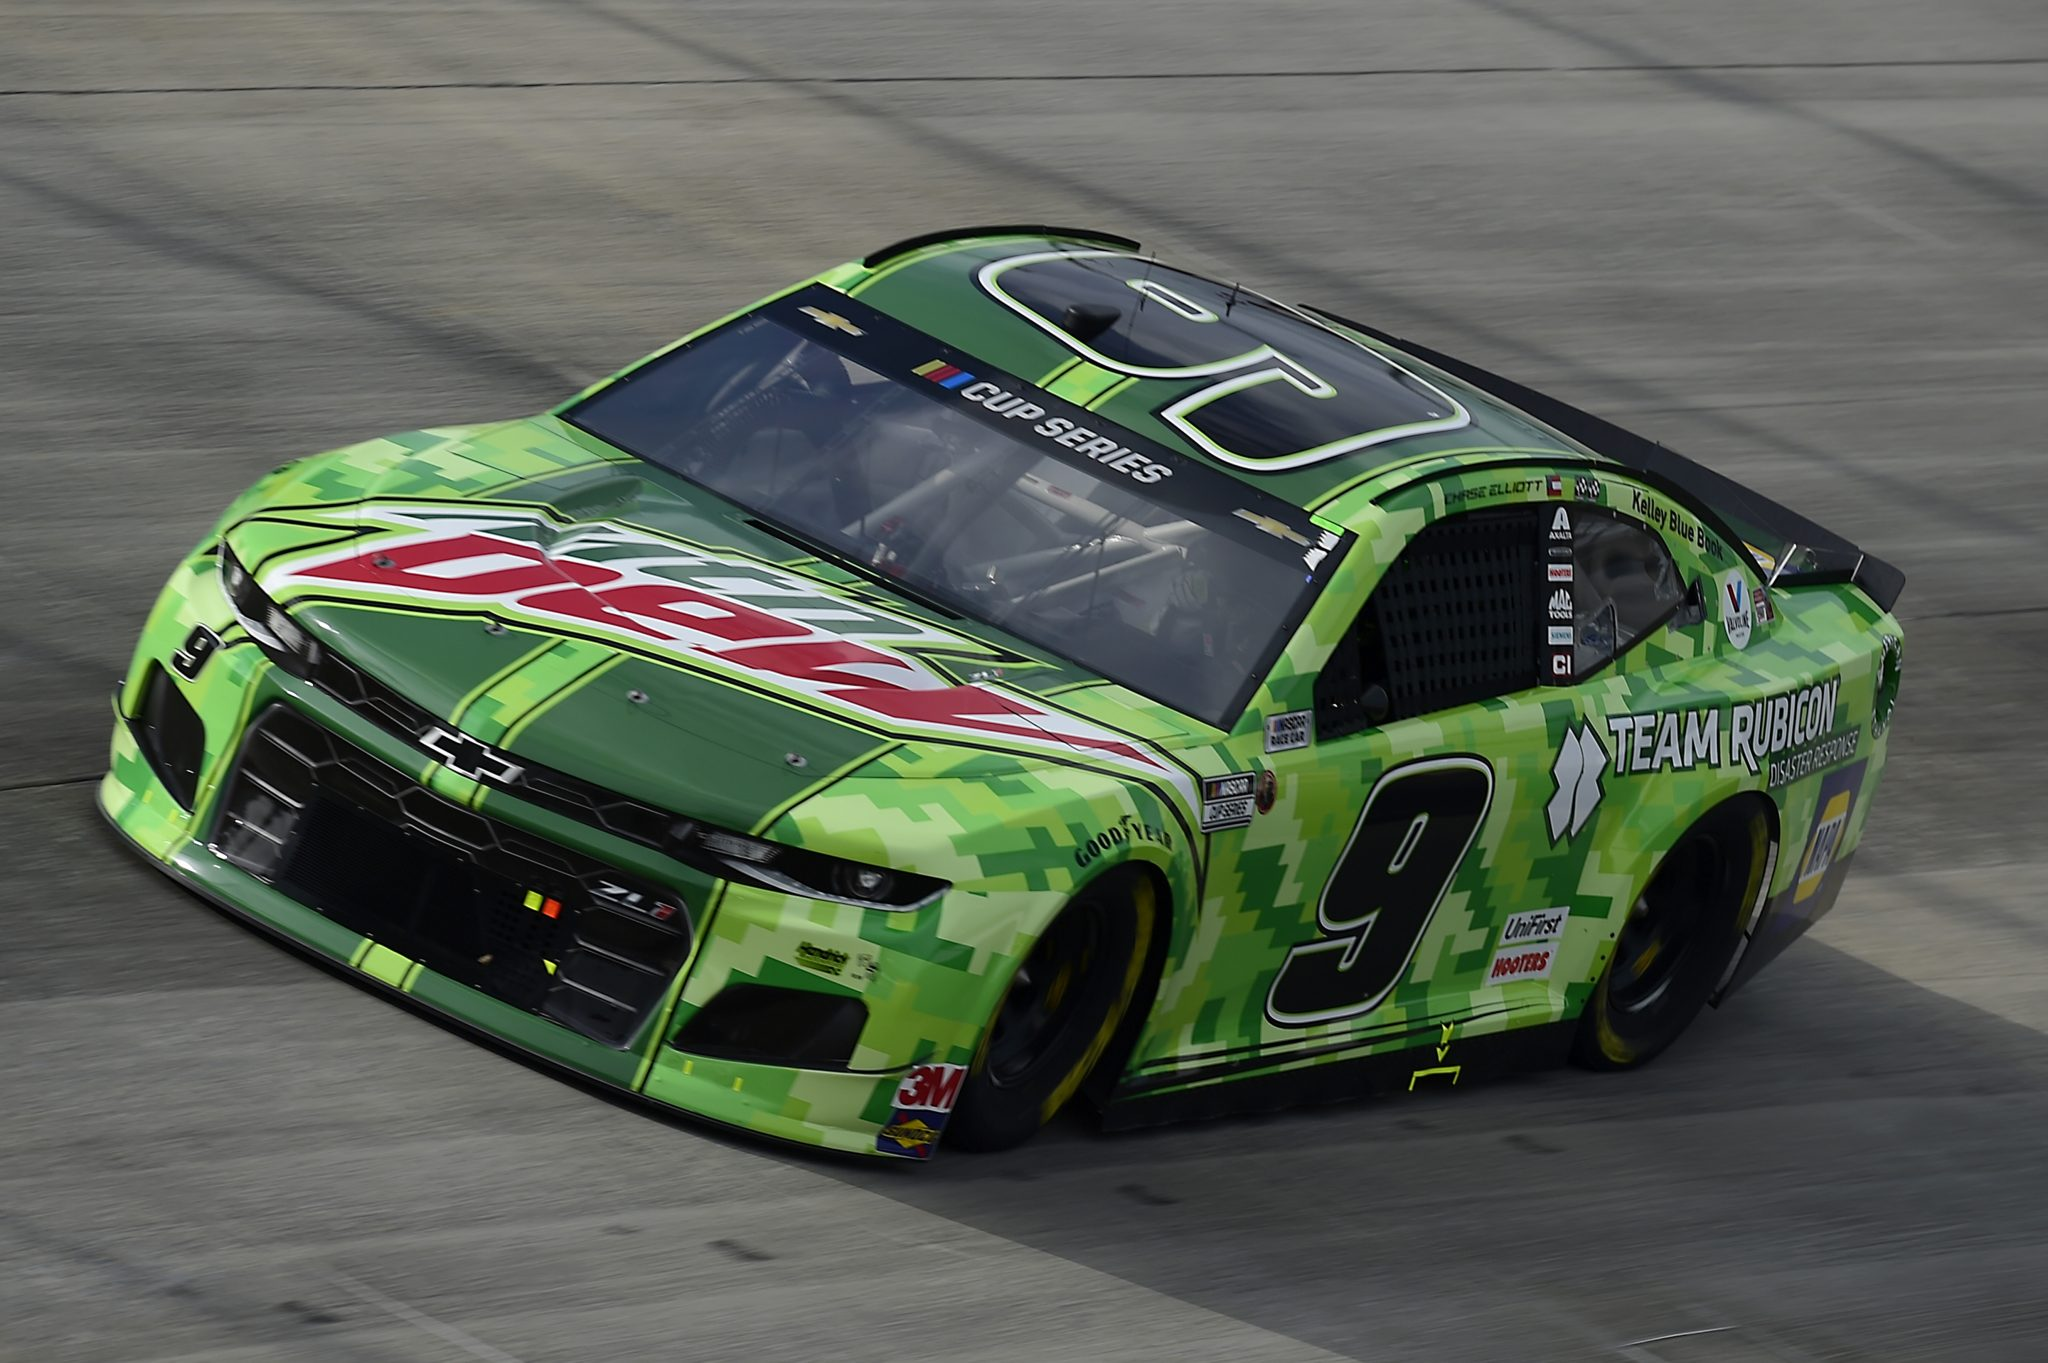 DOVER, DELAWARE - AUGUST 22: Chase Elliott, driver of the #9 Mountain Dew/Team Rubicon Chevrolet, drives during the NASCAR Cup Series Drydene 311 at Dover International Speedway on August 22, 2020 in Dover, Delaware. (Photo by Jared C. Tilton/Getty Images) | Getty Images